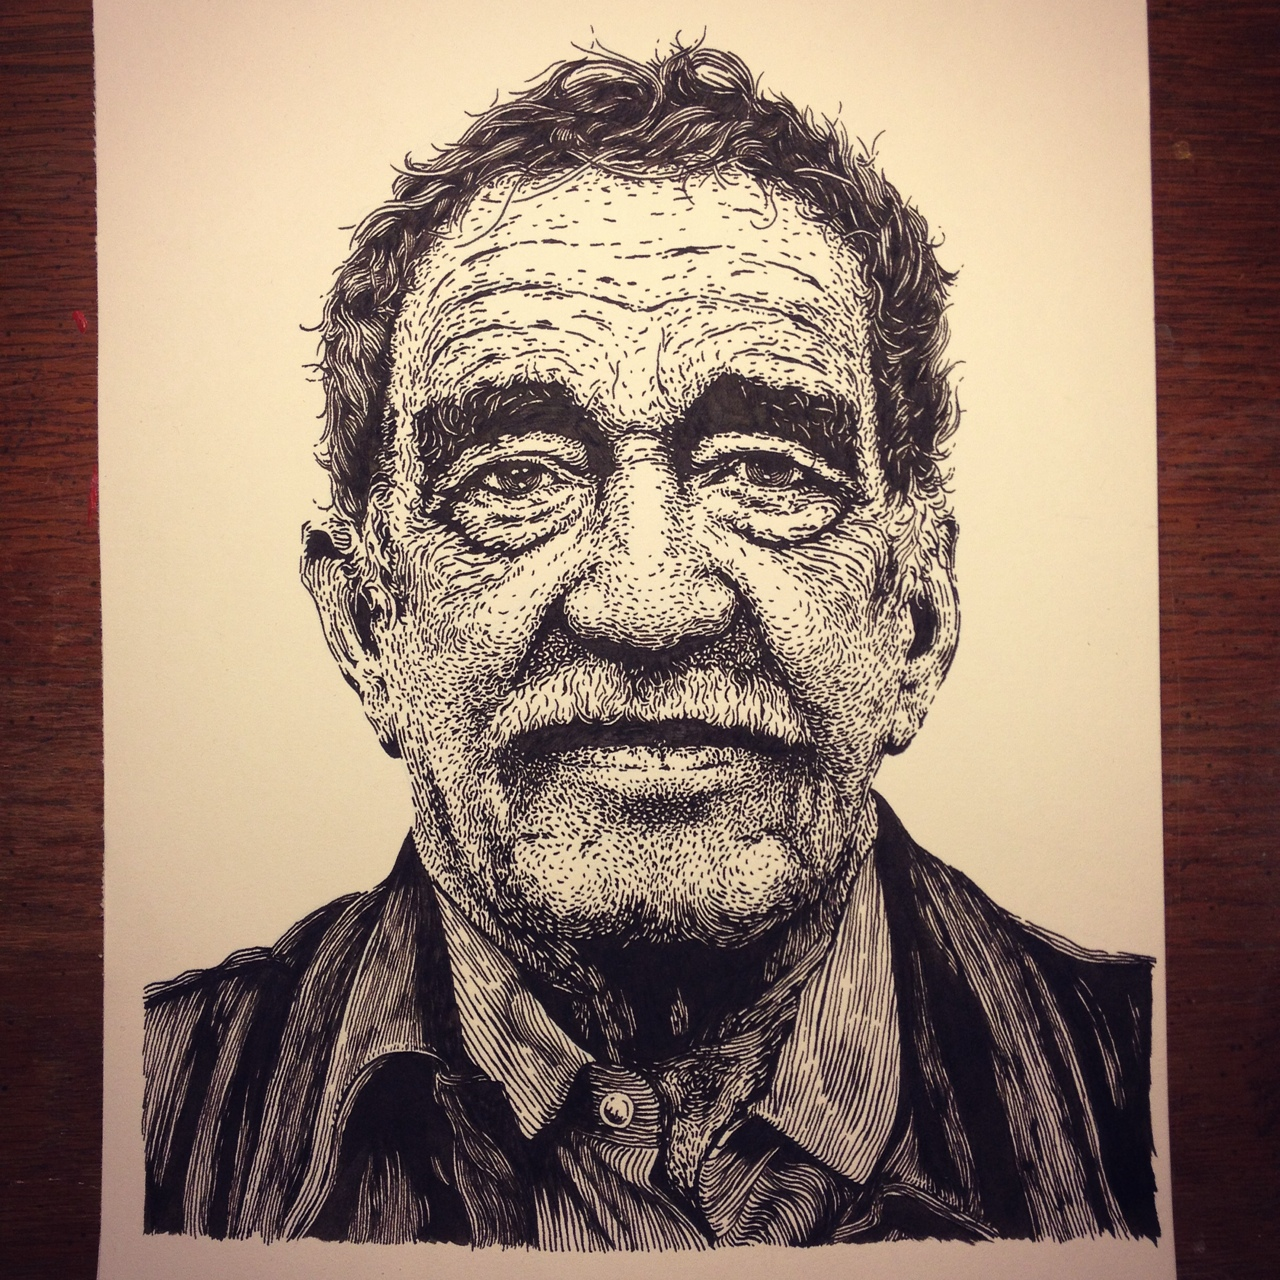 Pen and ink portrait of Gabriel Garcia Marquez. Gonna make a screen printed poster out of this. Details to come.